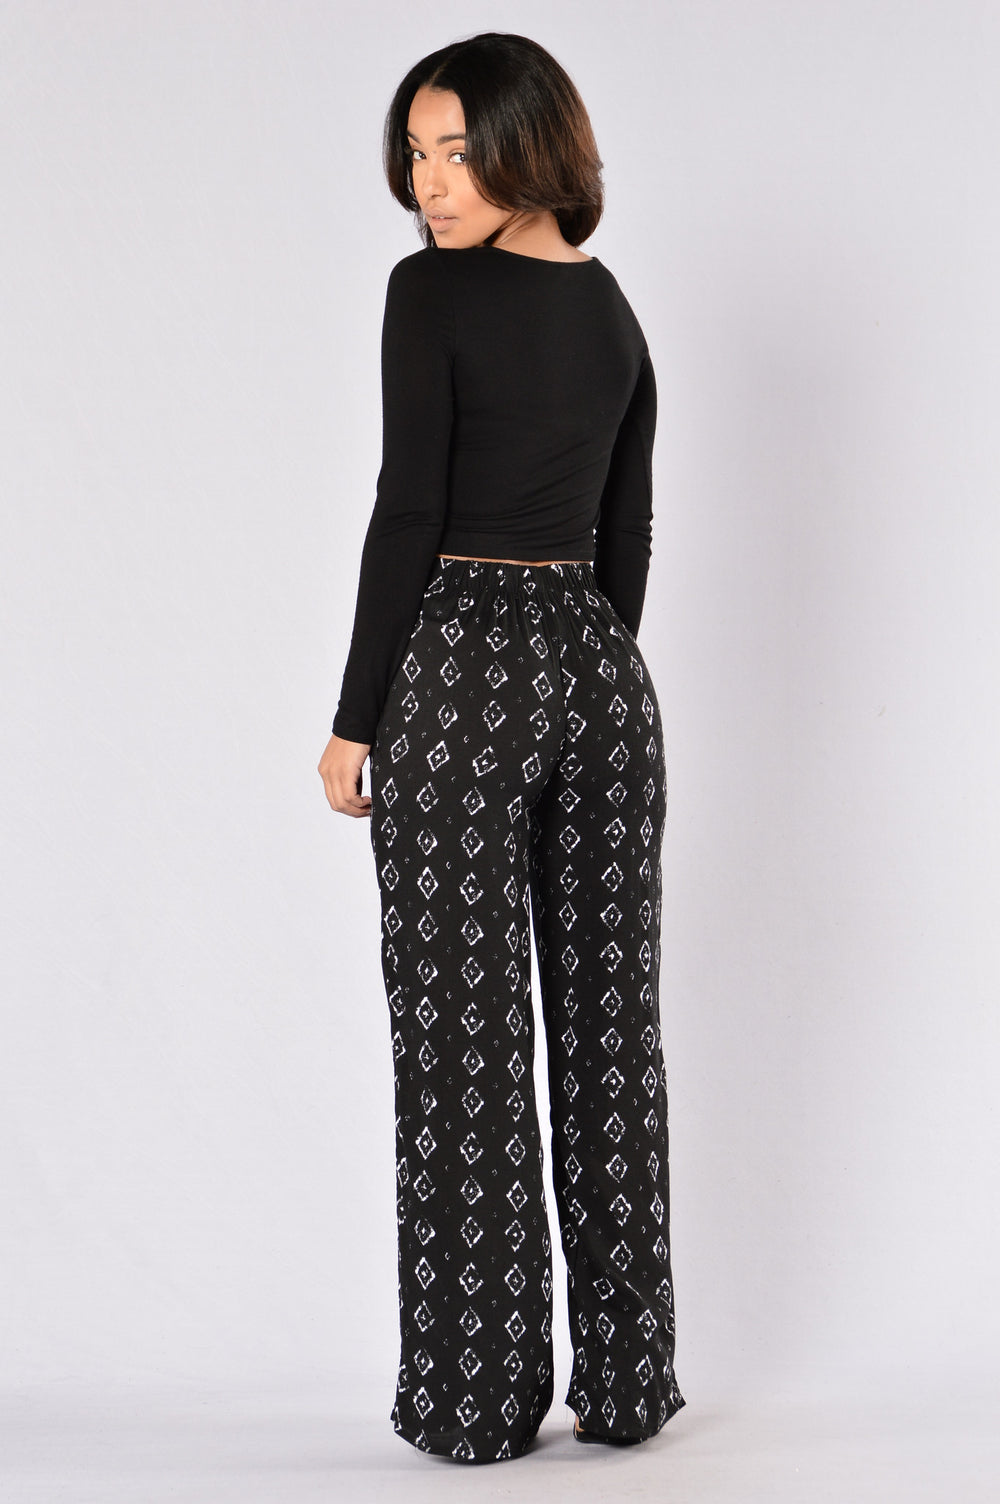 Island Girl Pants - Oros Black